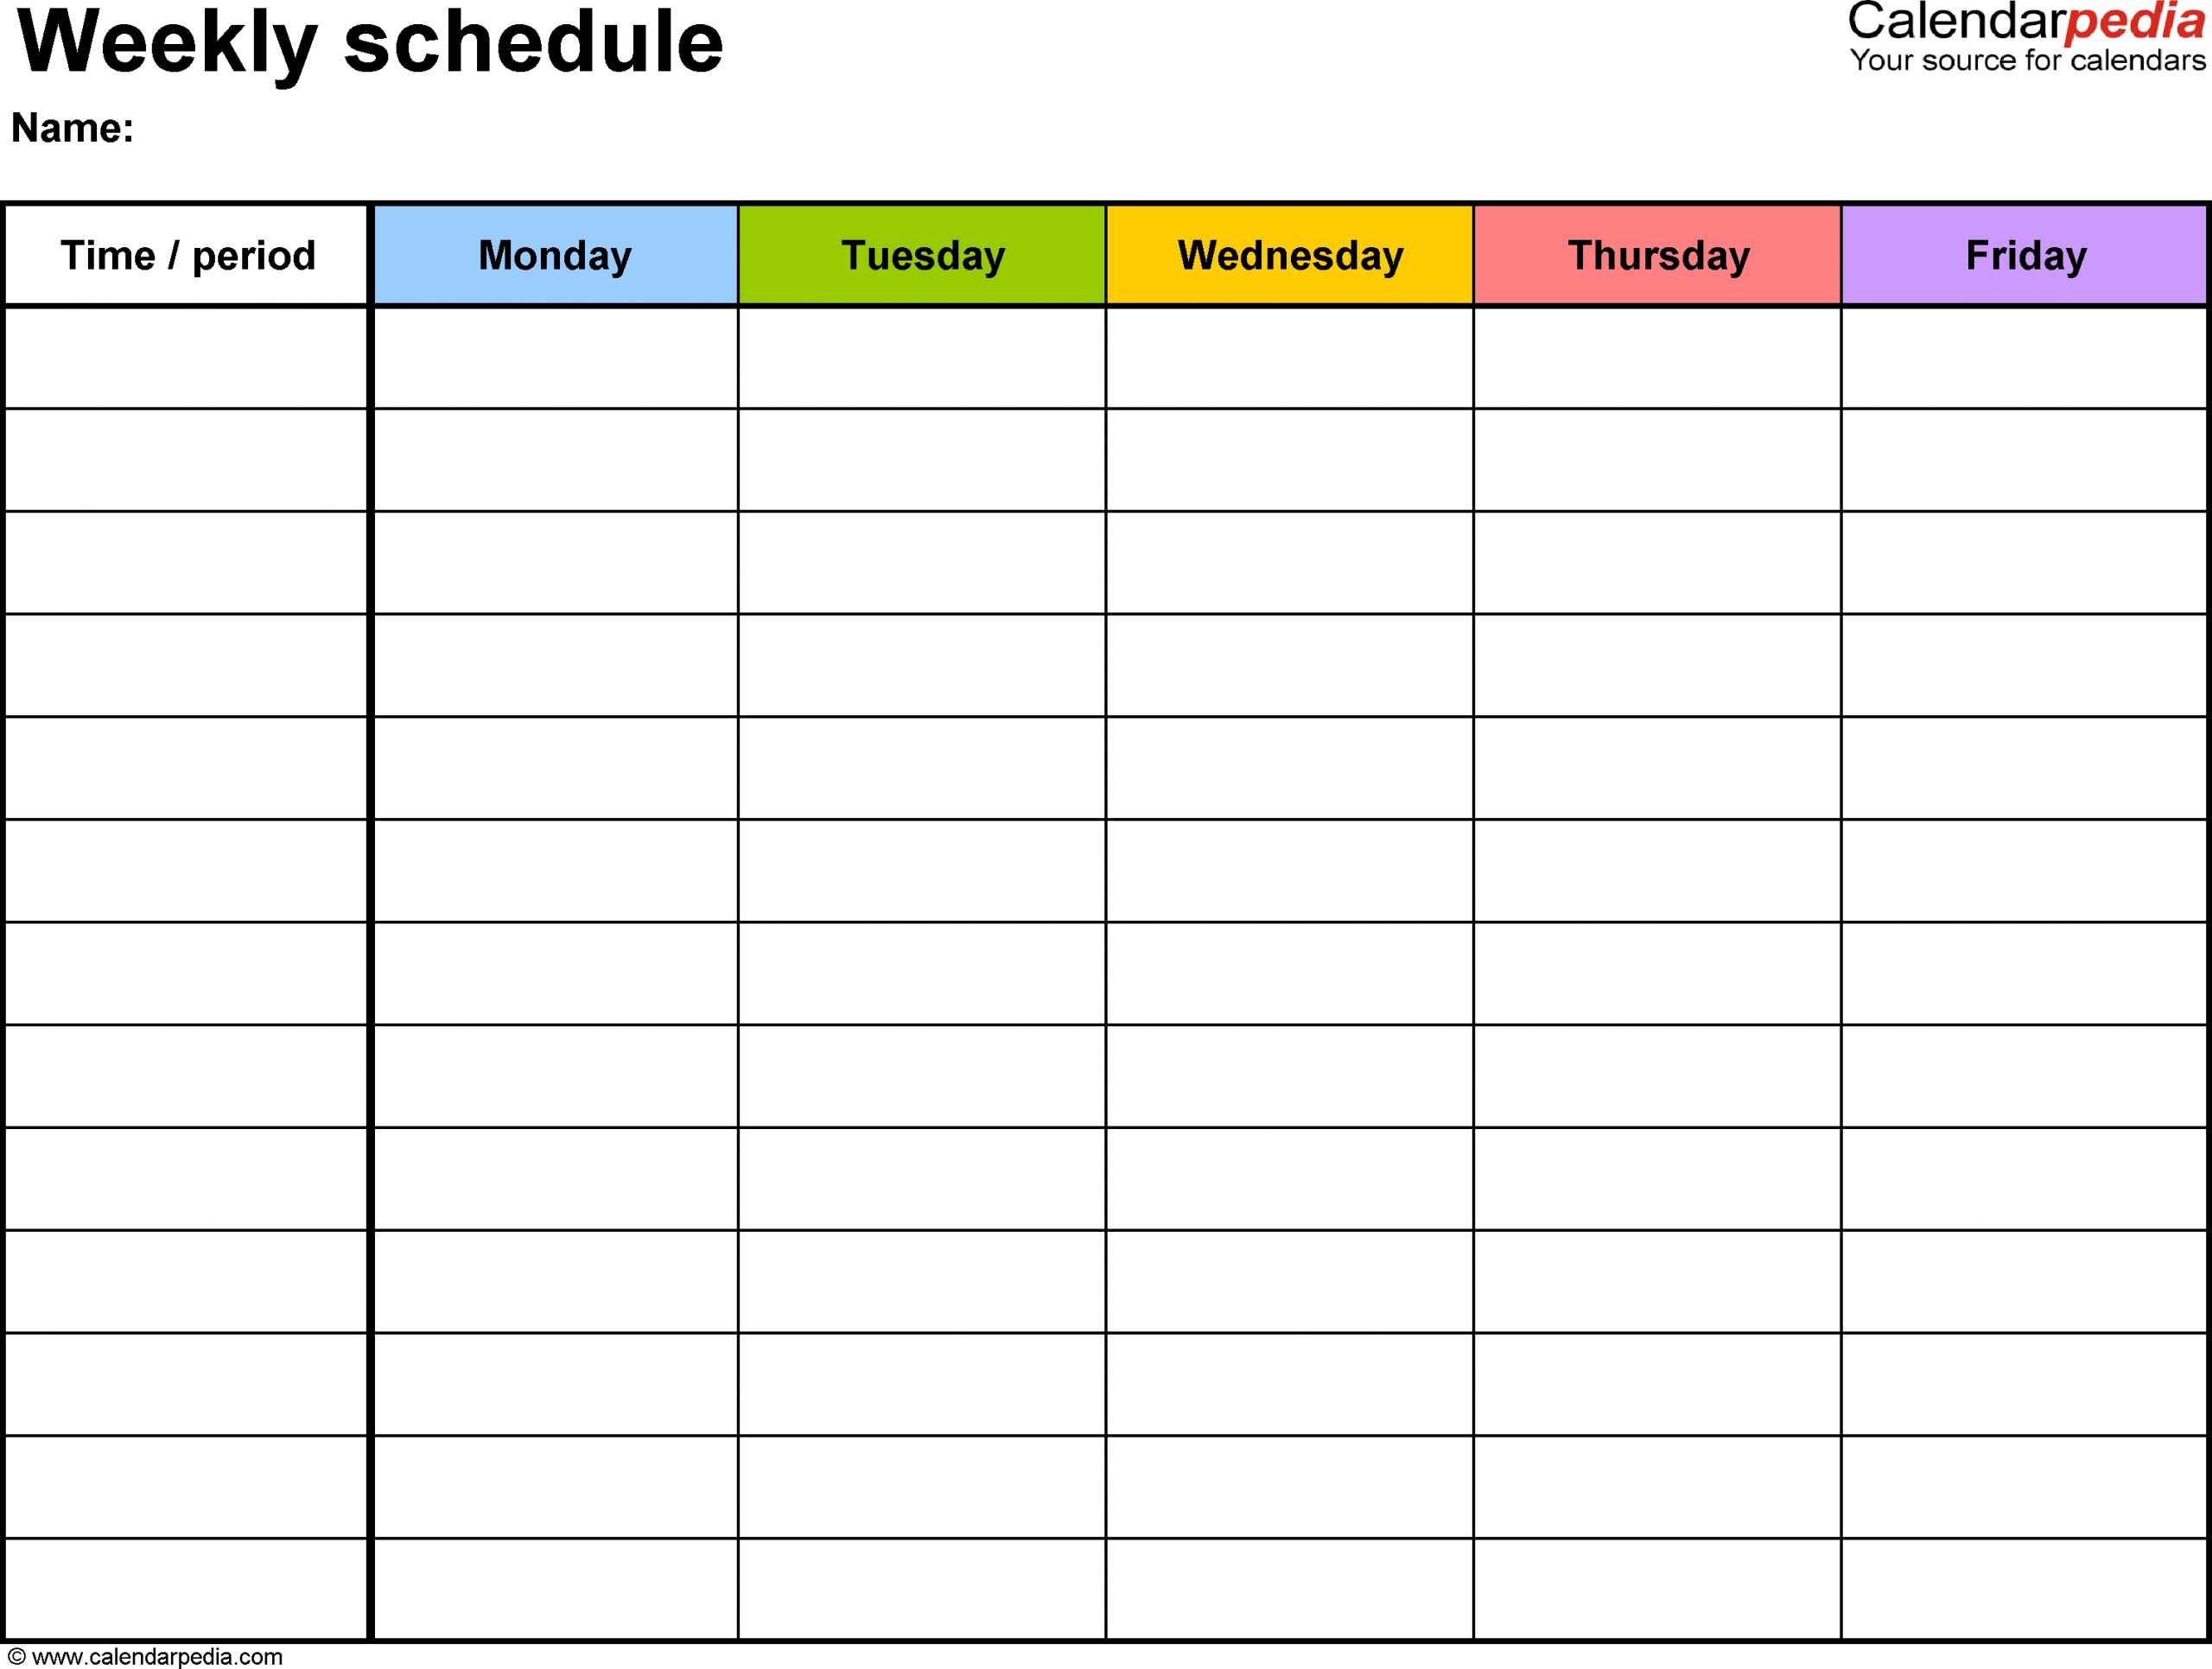 Free Weekly Schedule Templates For Word - 18 Templates in Free Printable Weekly Schedule Planner